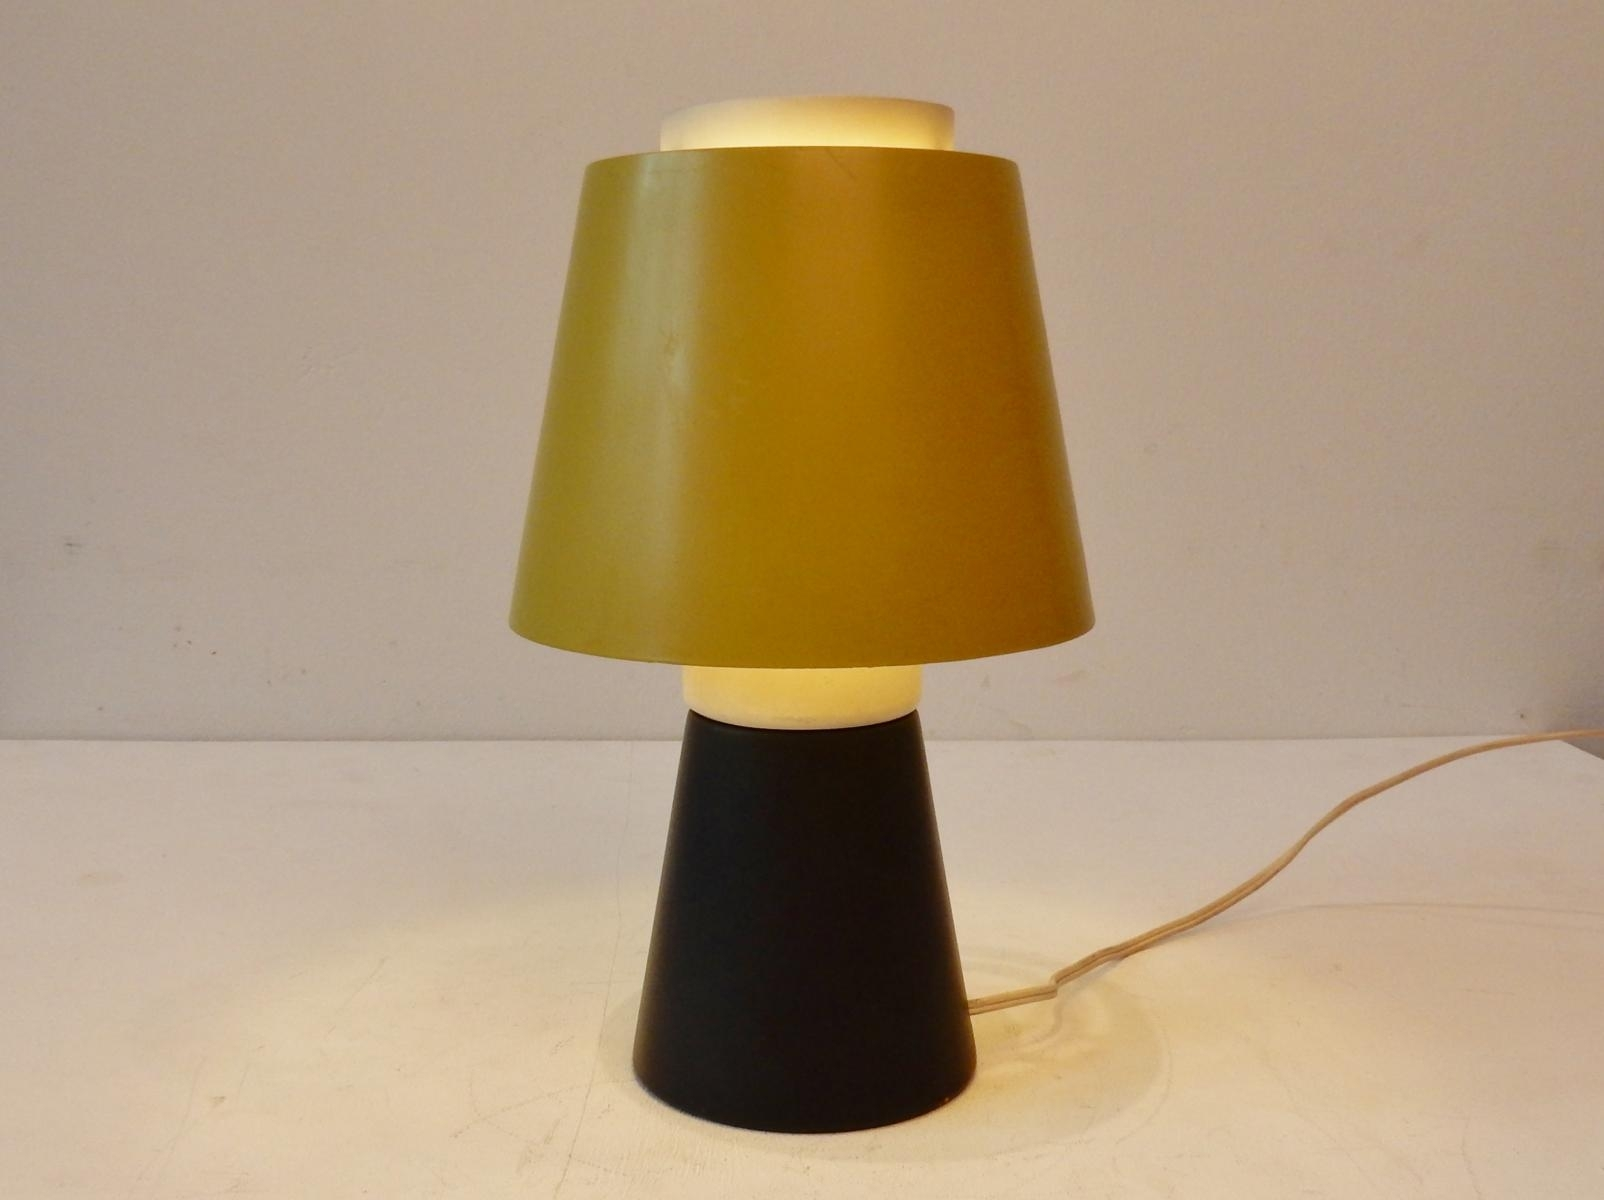 68 Most Magnificent Small Lamps Cool Table Glass Bedside Purple Lamp Pertaining To Purple Living Room Table Lamps (View 2 of 15)